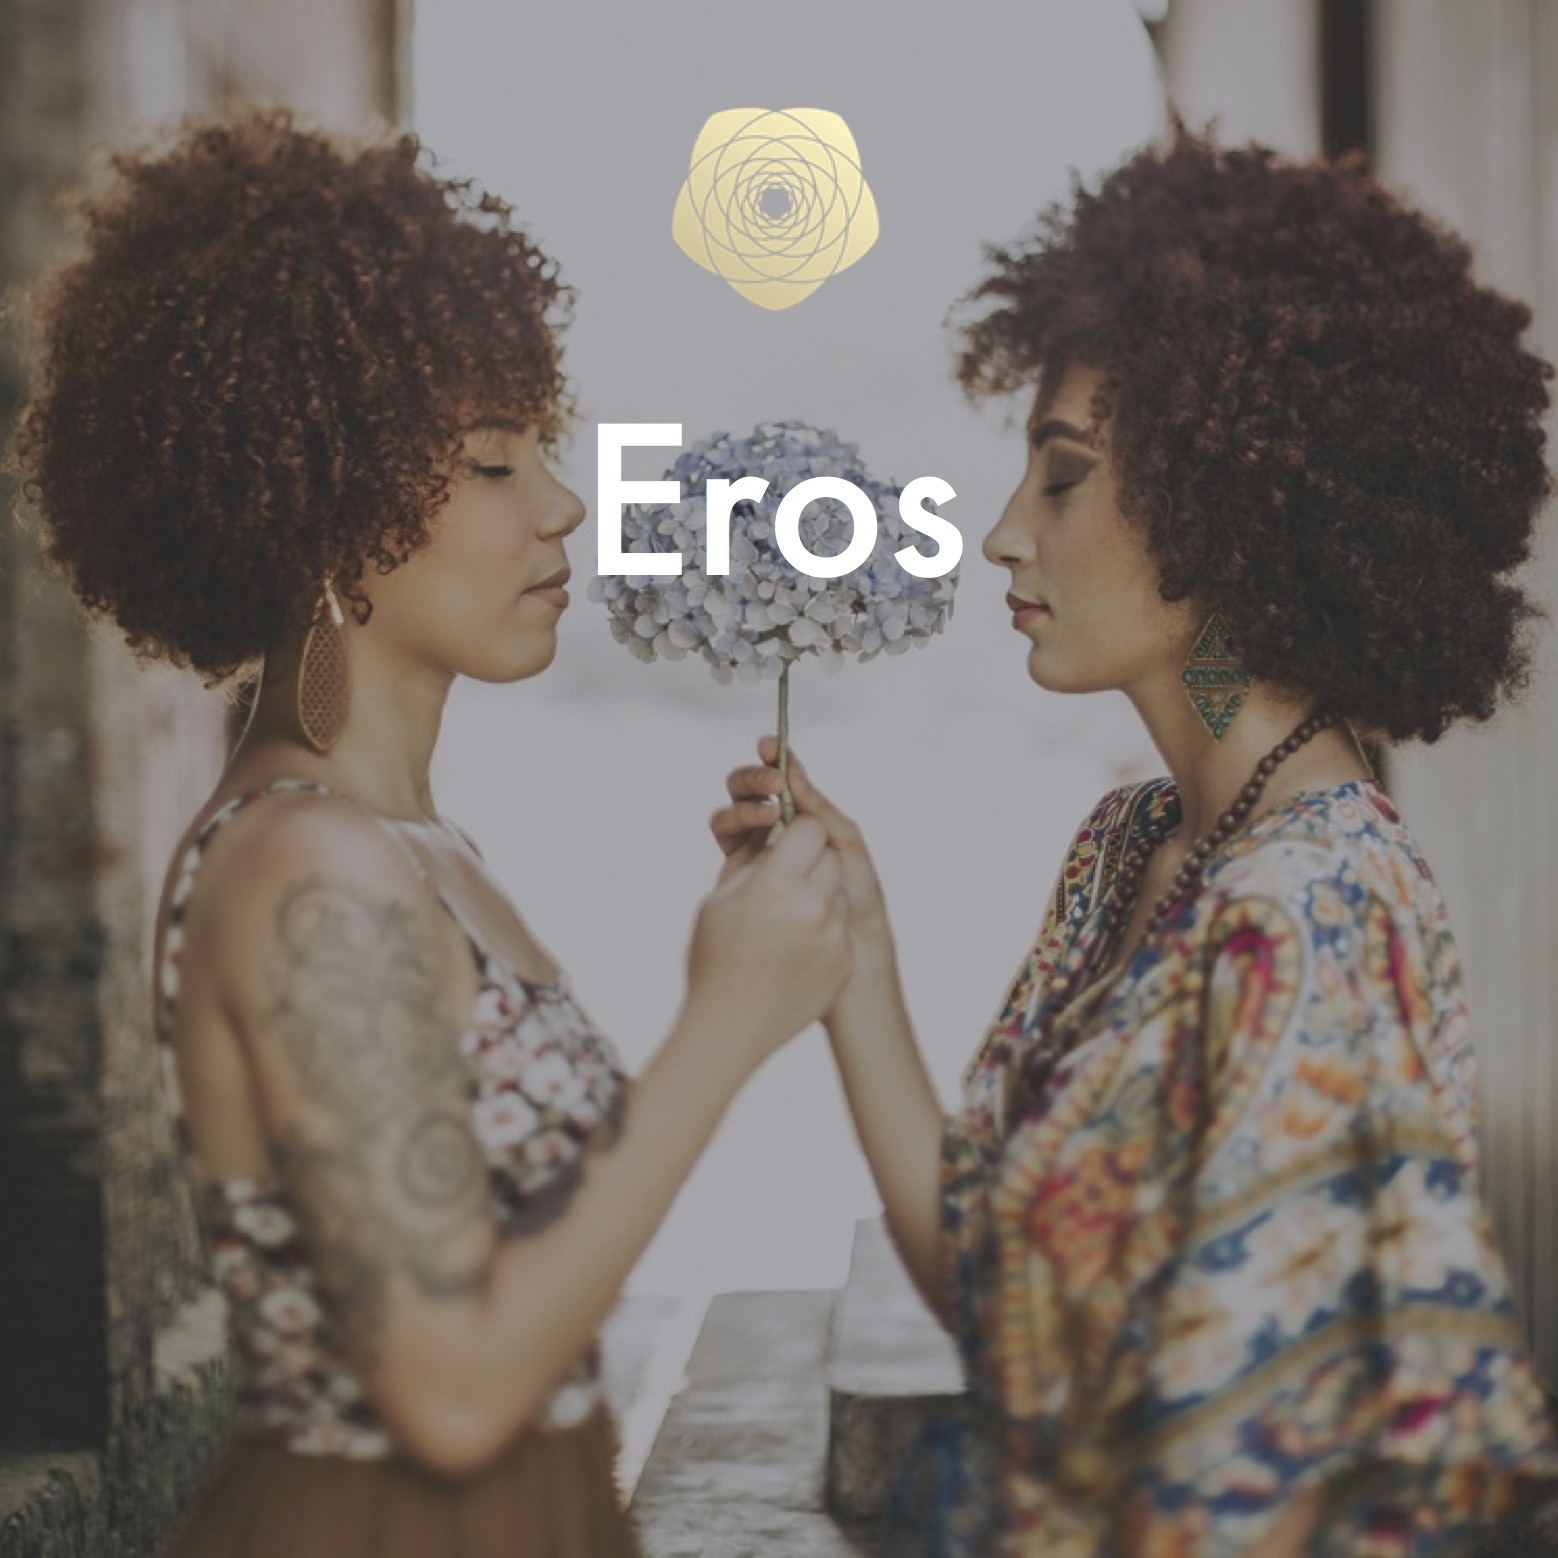 Eros is a monthly subscription course that seeks to unveil the erotic life force energy in love, work and play with Lara Catone of The Artemis School and Laura Larriva Page of The Rhythm Way.